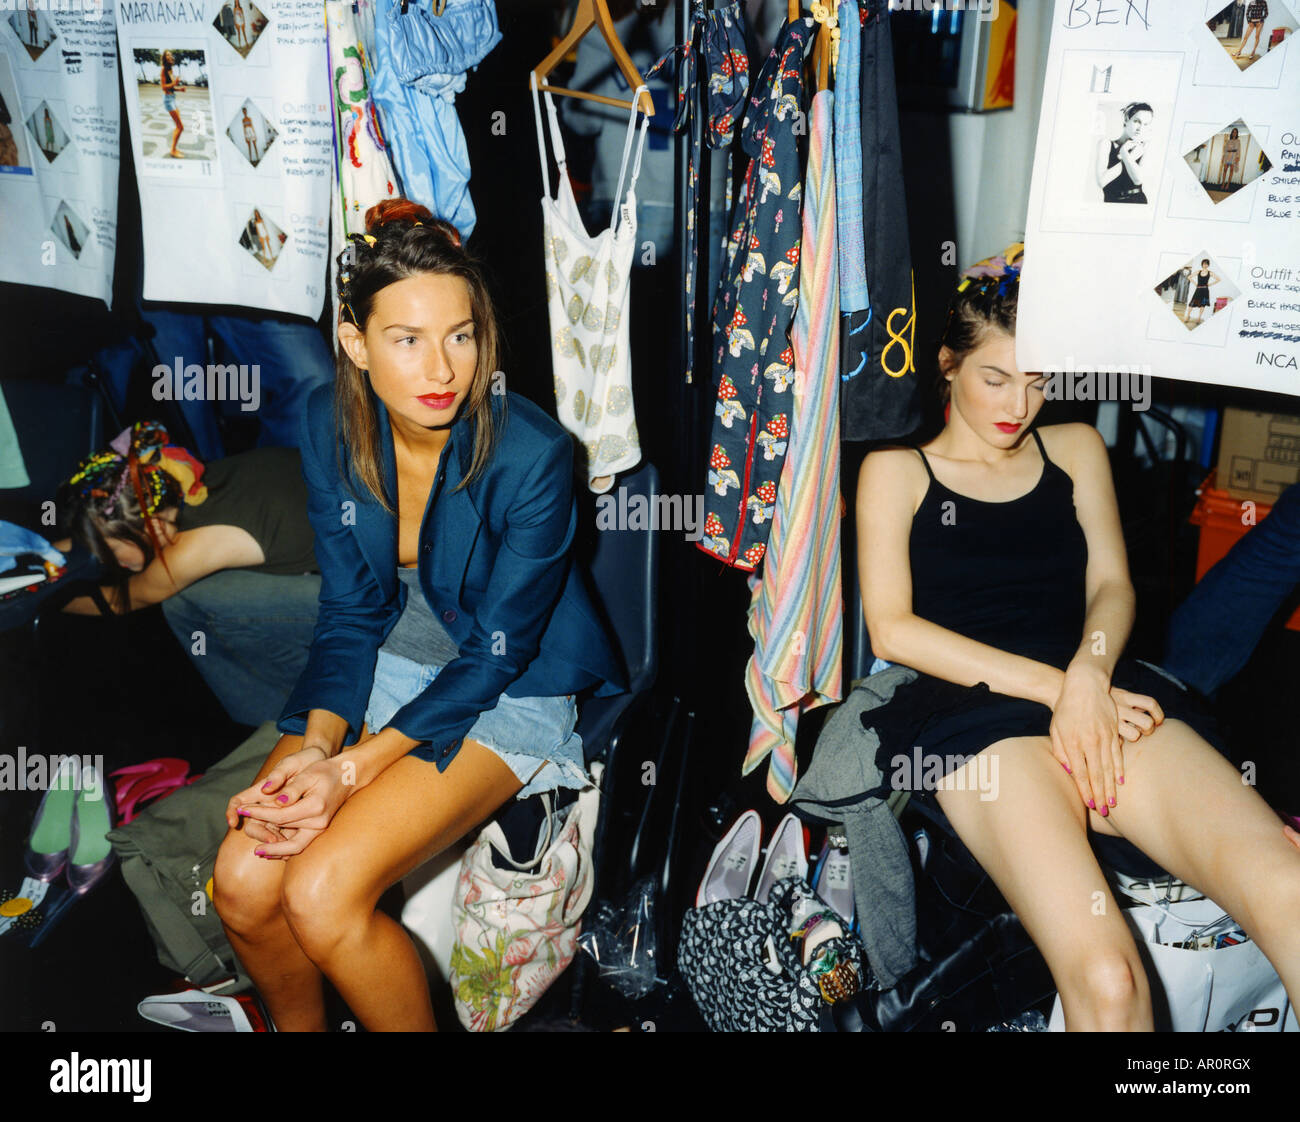 Models in various states of readiness wait patiently backstage at Boyd. - Stock Image